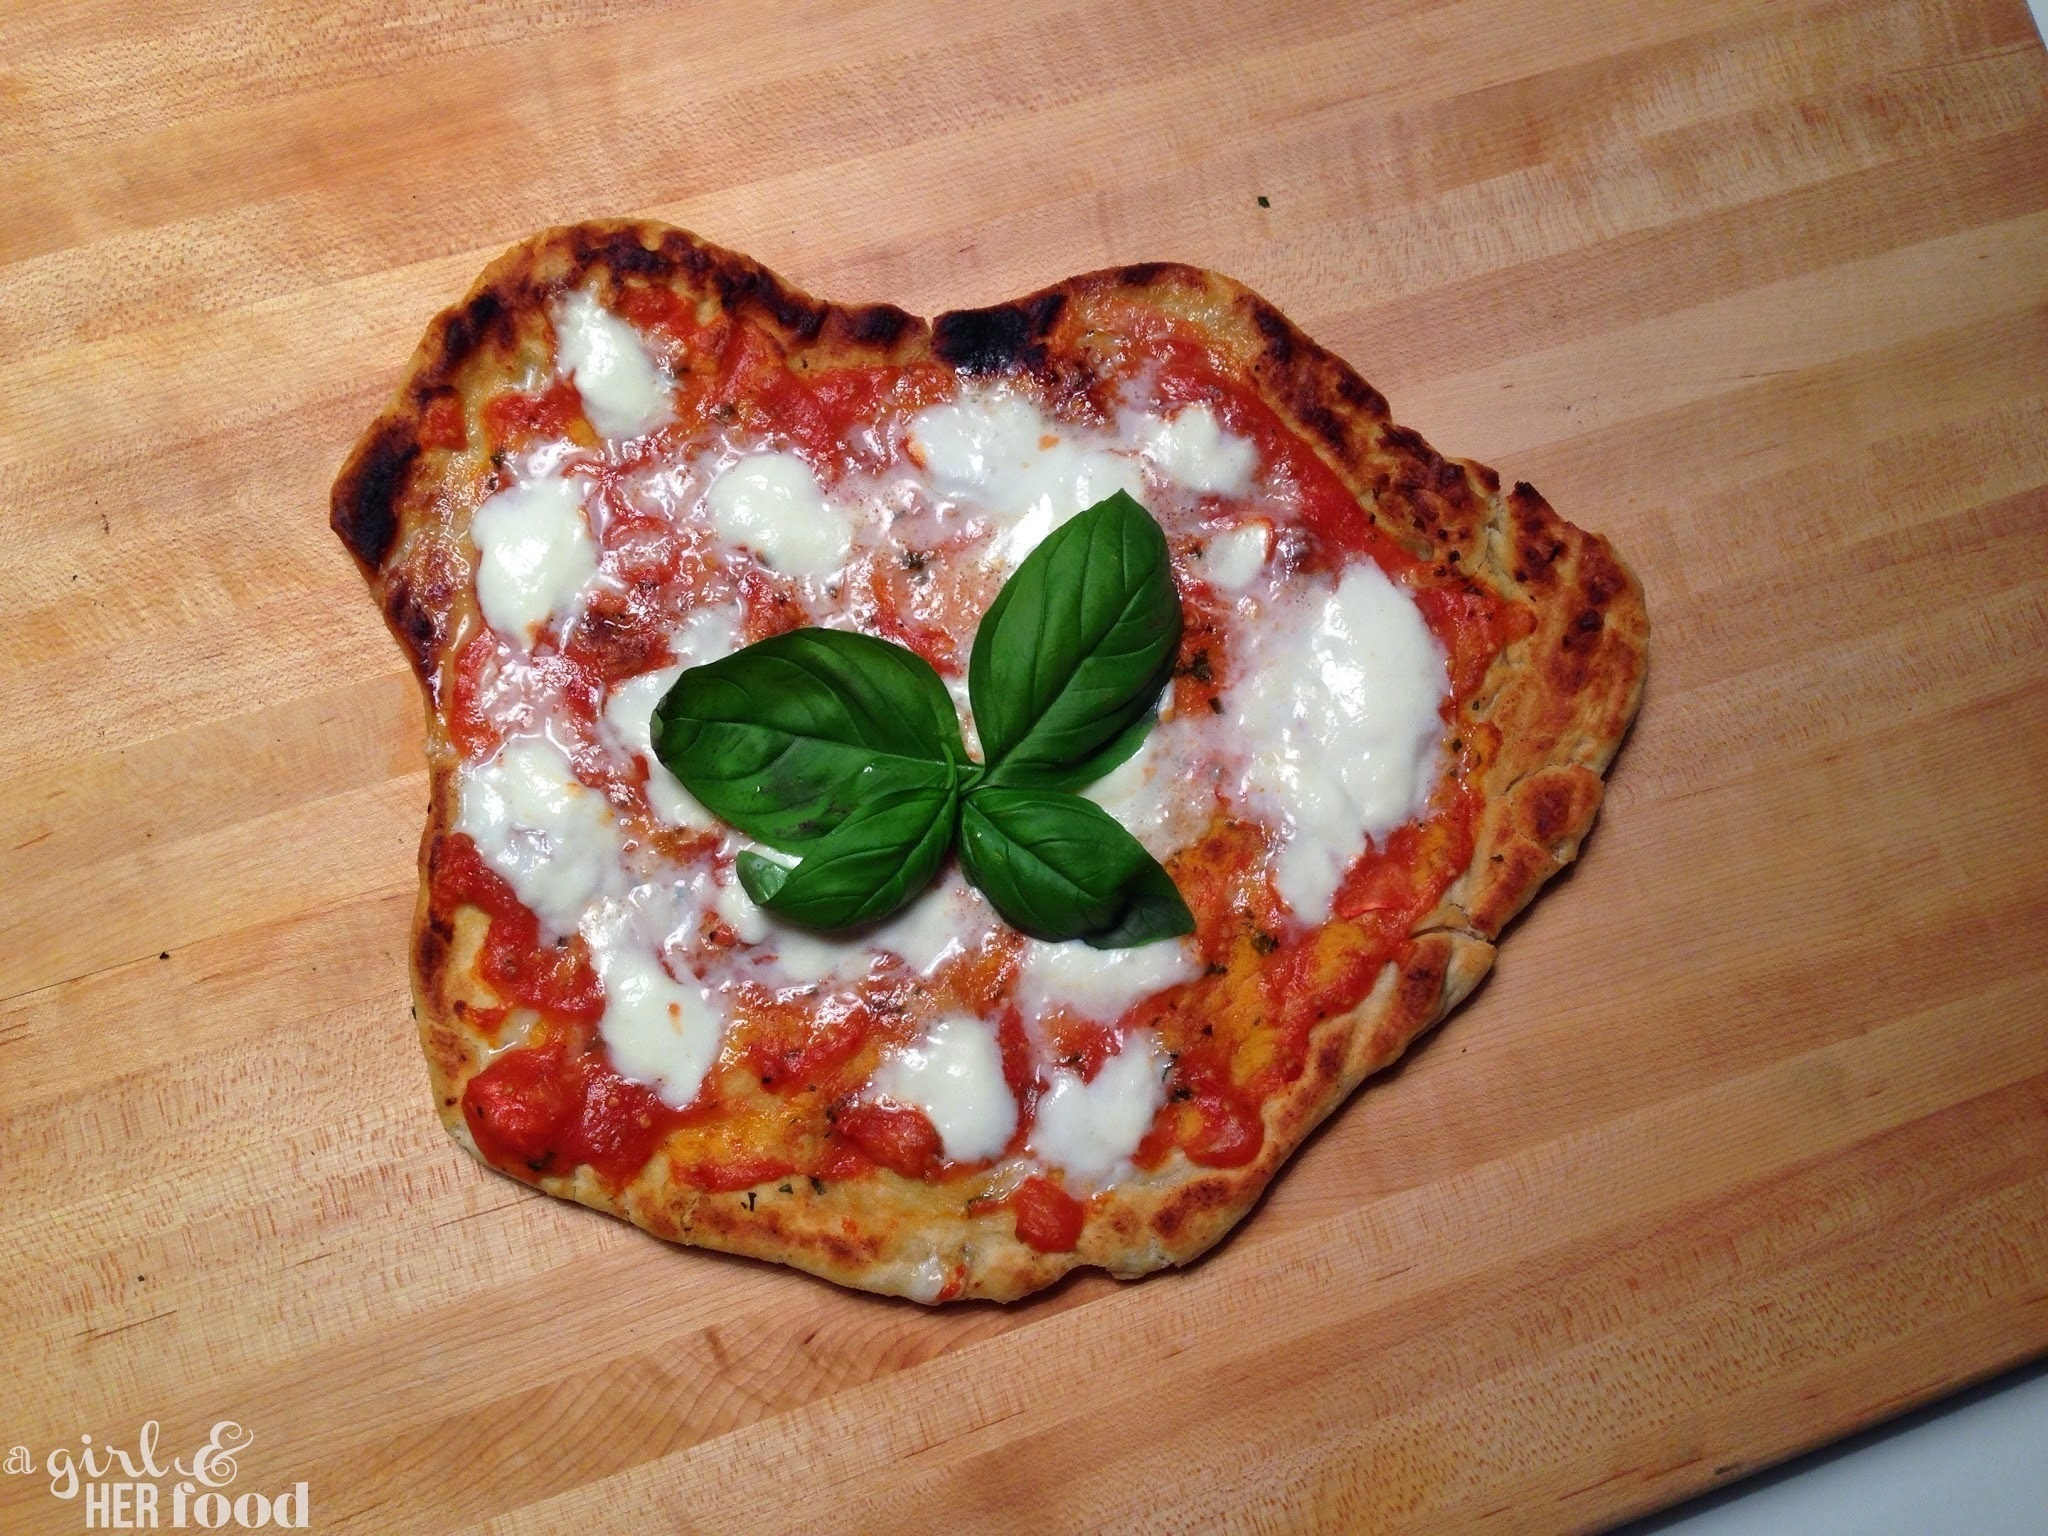 Grillling Pizza 101: Margherita Pizza